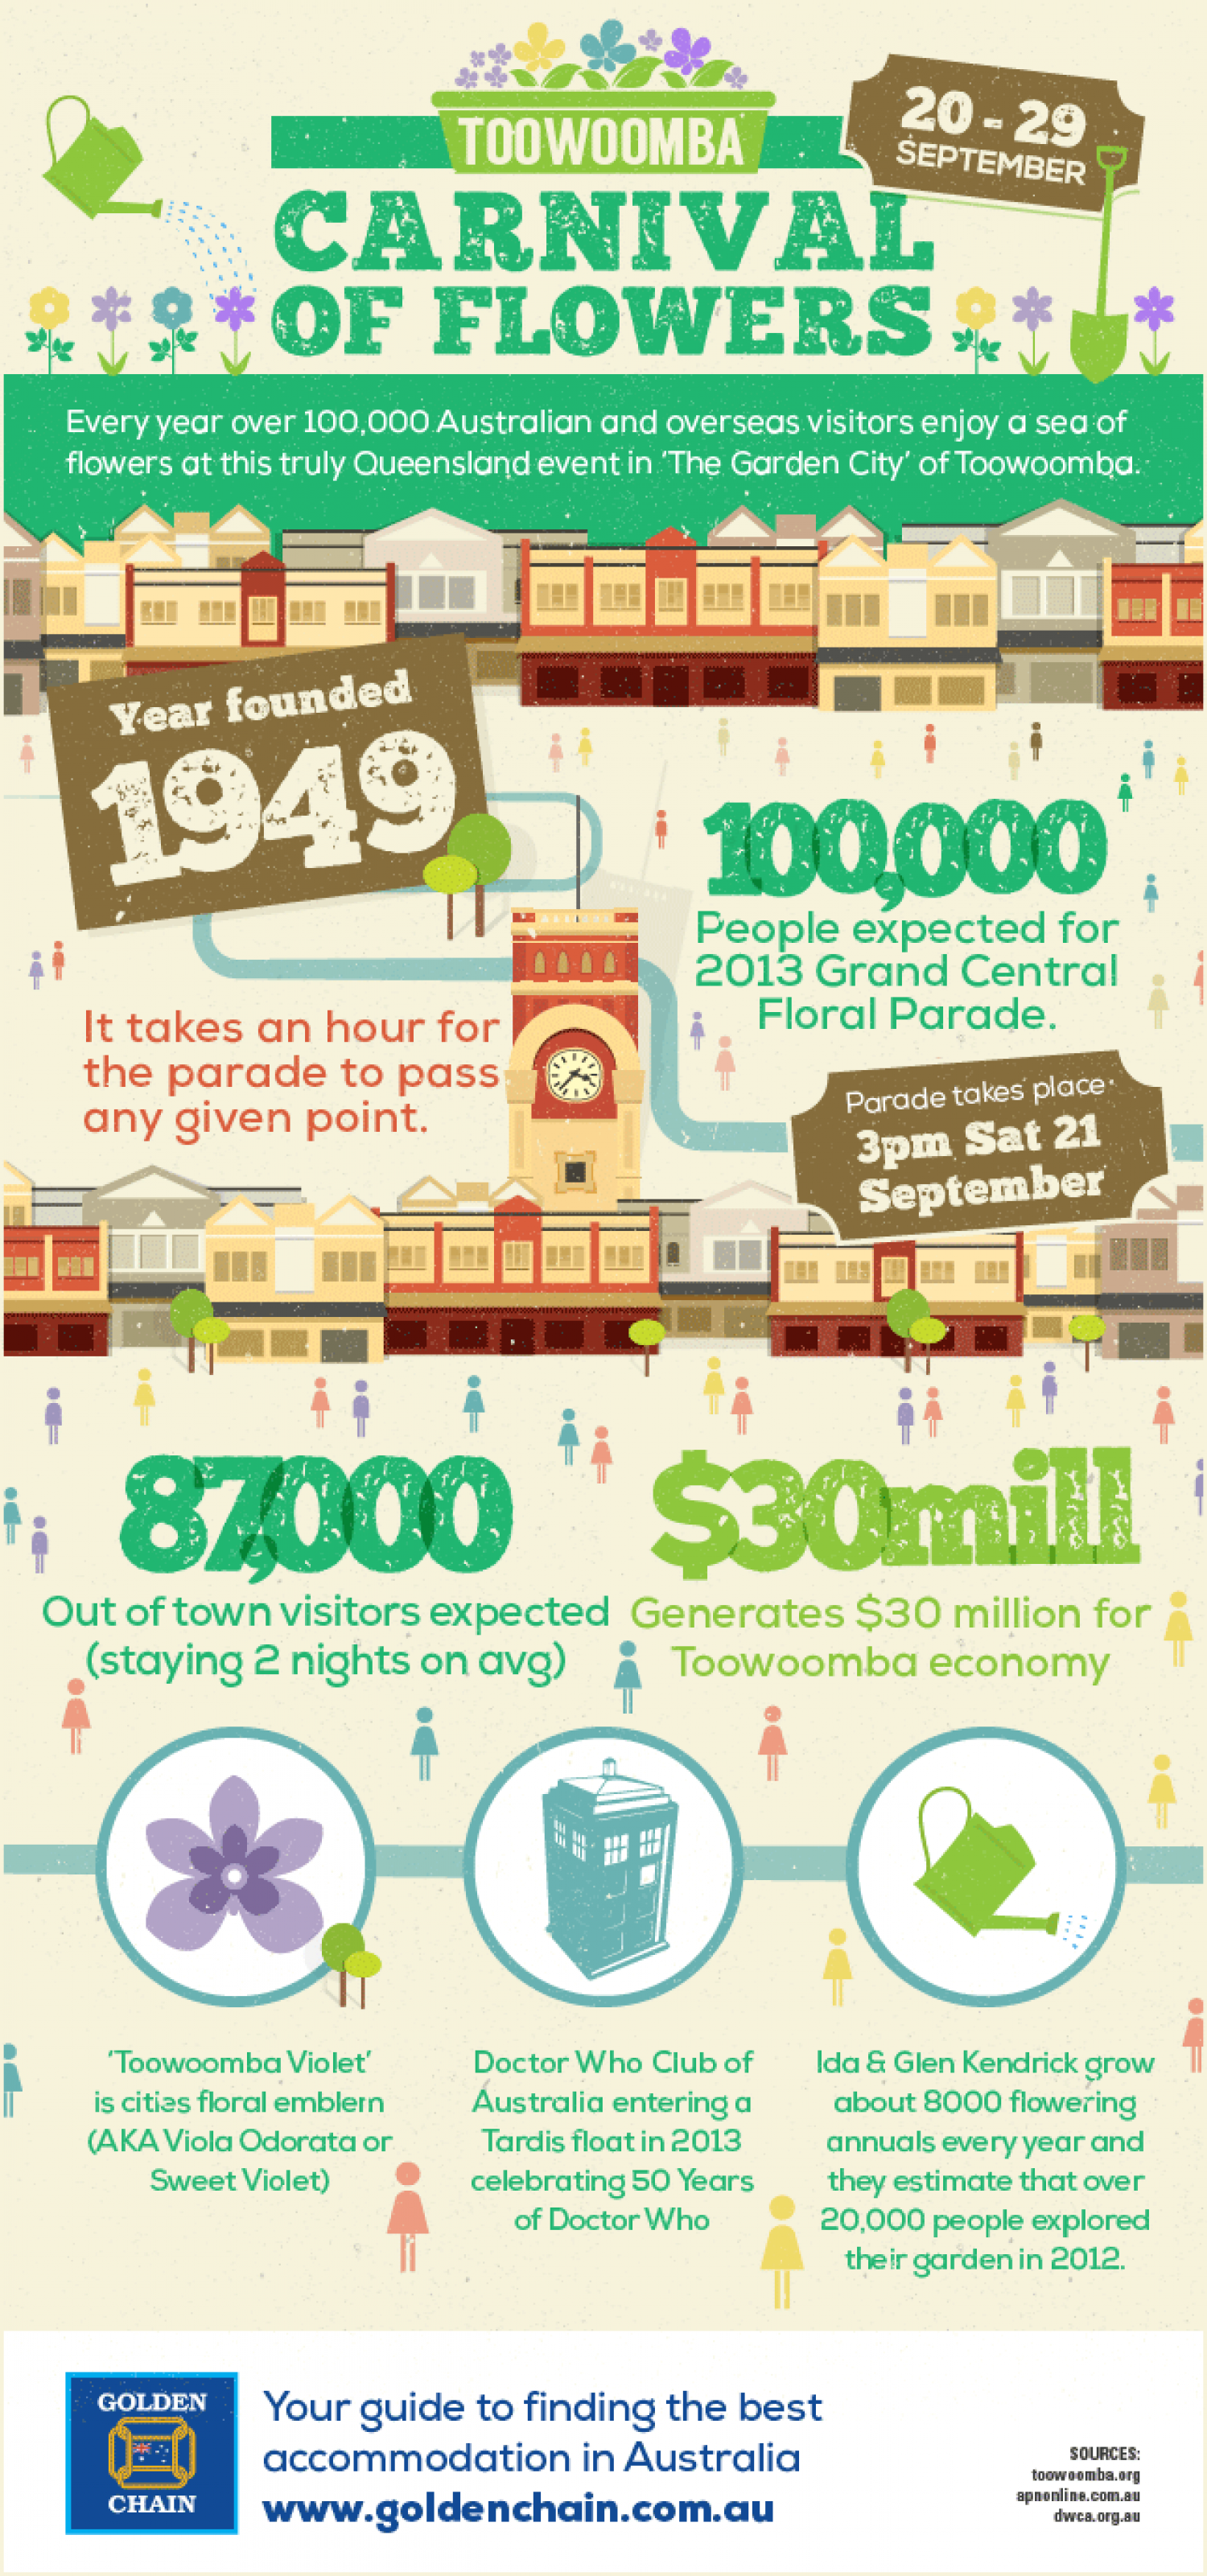 toowoomba-carnival-of-flowers_522596f481e8f_w1500.png